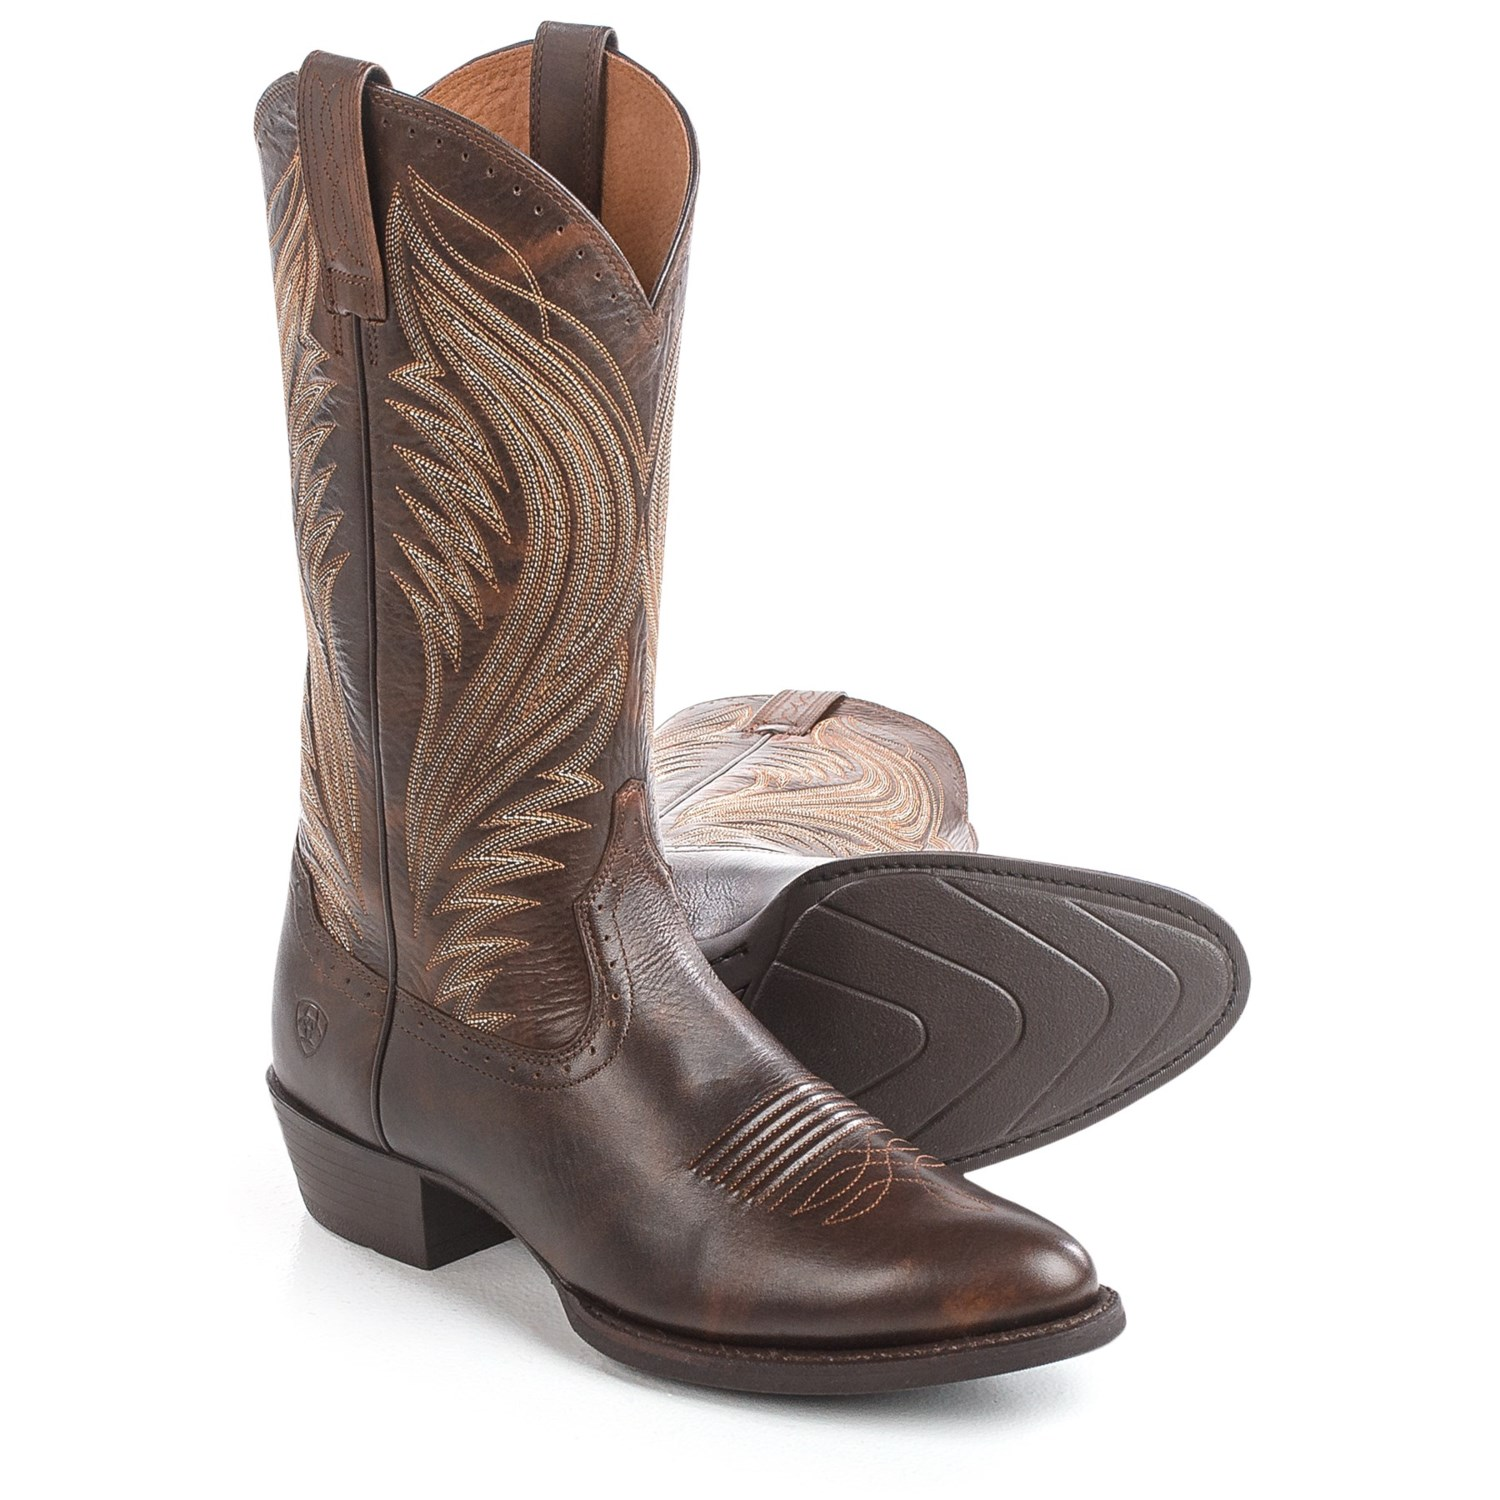 Ariat: Average savings of 55% at Sierra Trading Post